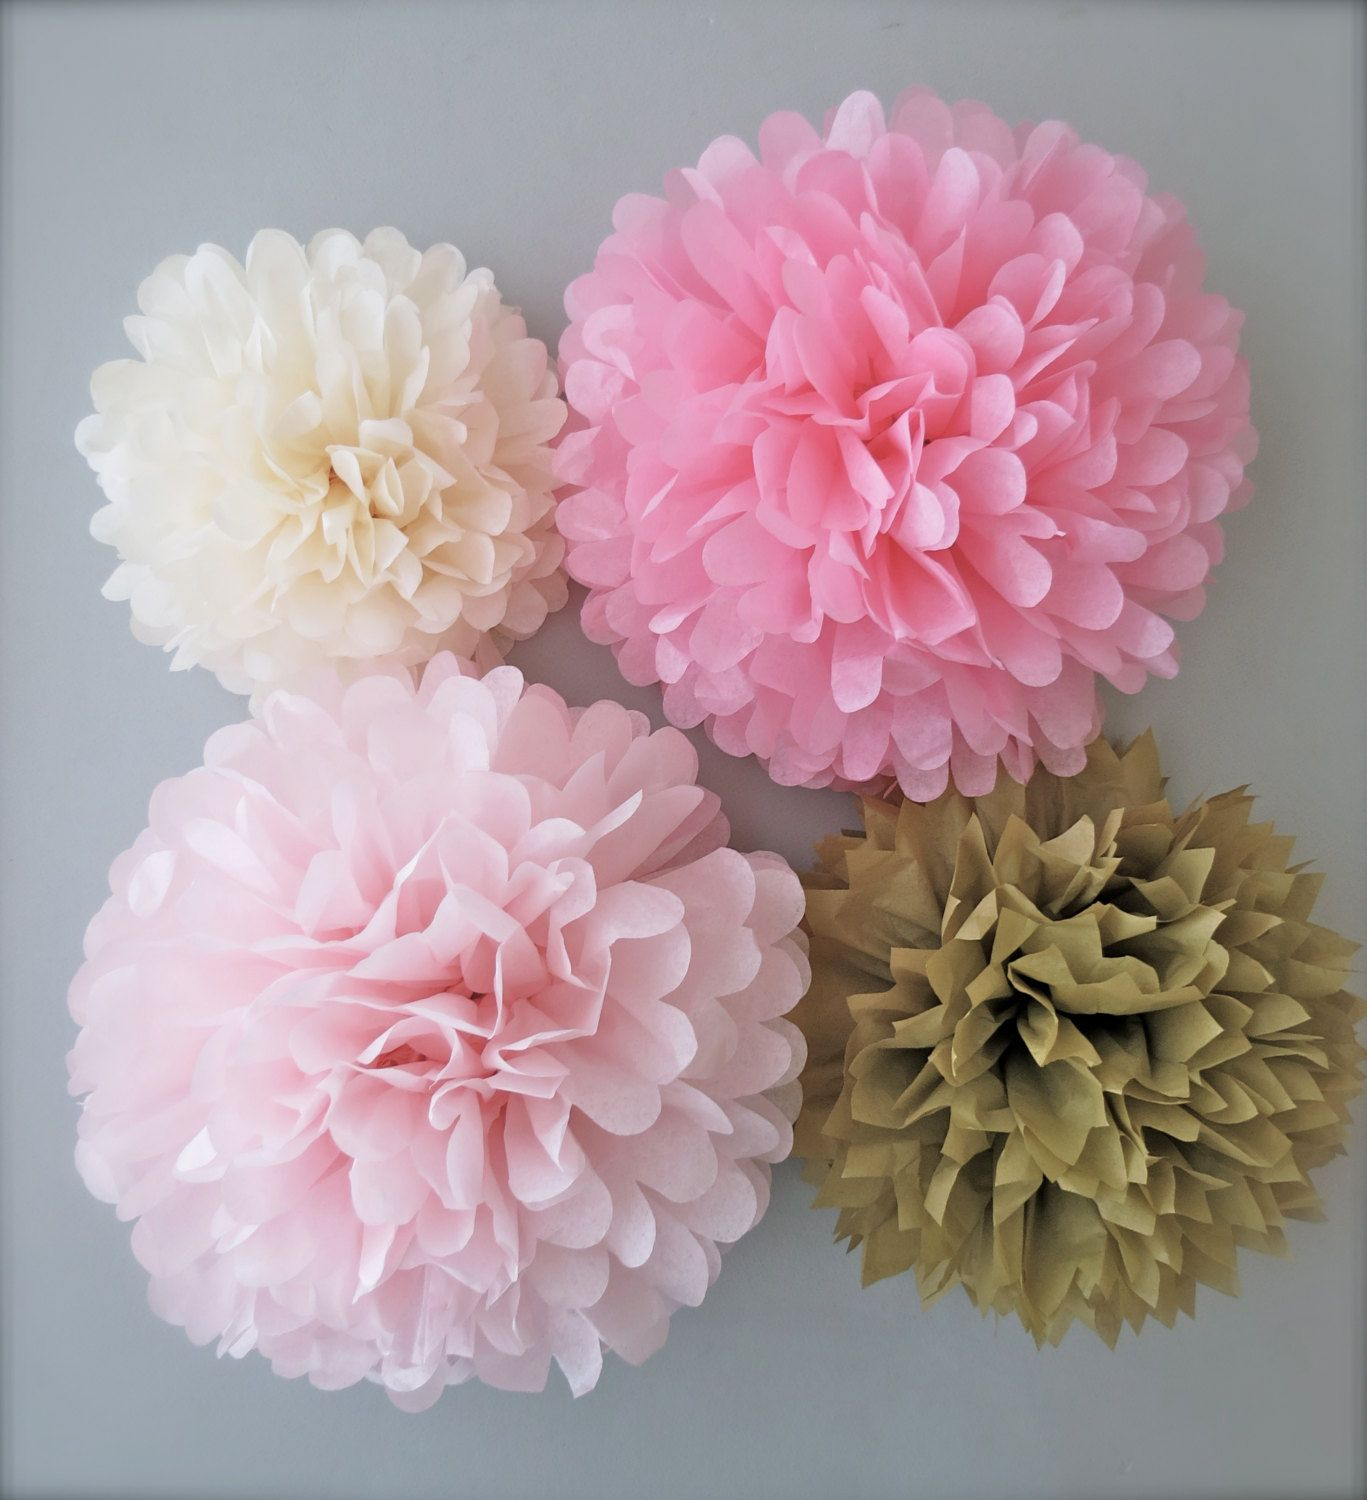 Pink Gold Tissue Paper Pom Poms 4 Piece By Prettywithsprinkles 15 50 Pink And Gold Decorations Pink Gold Party Gold Baby Showers